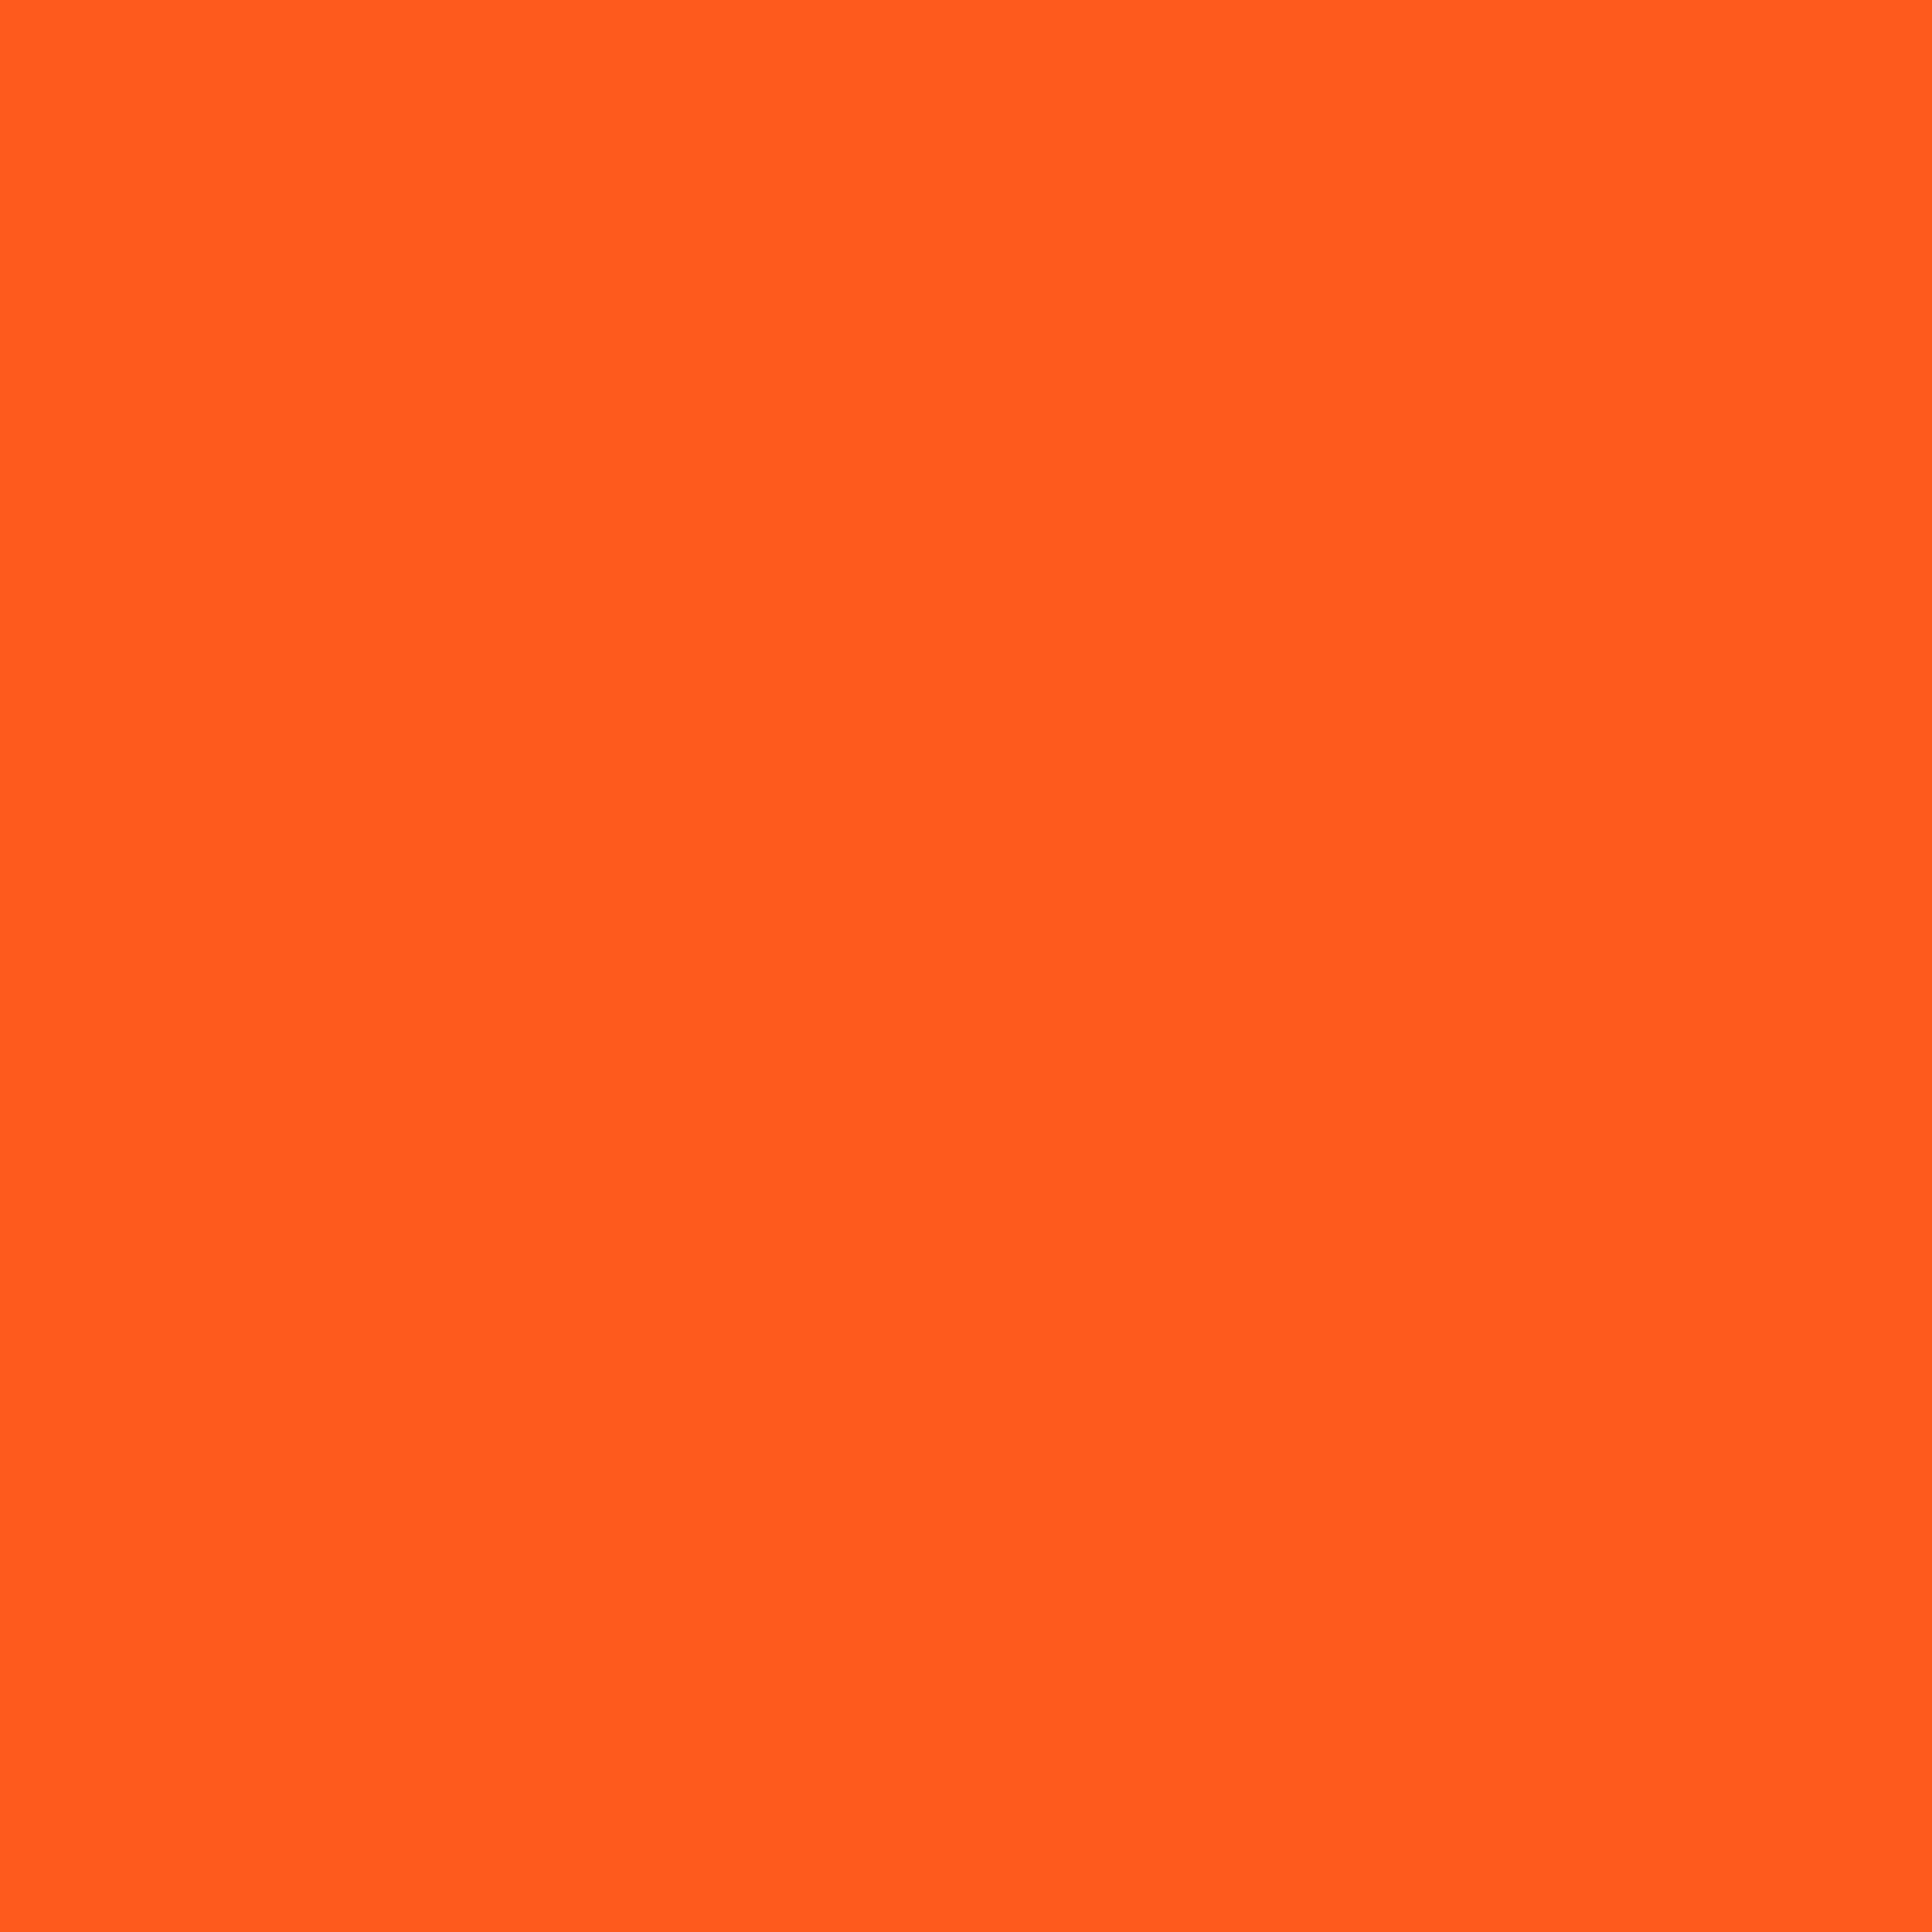 2732x2732 Giants Orange Solid Color Background